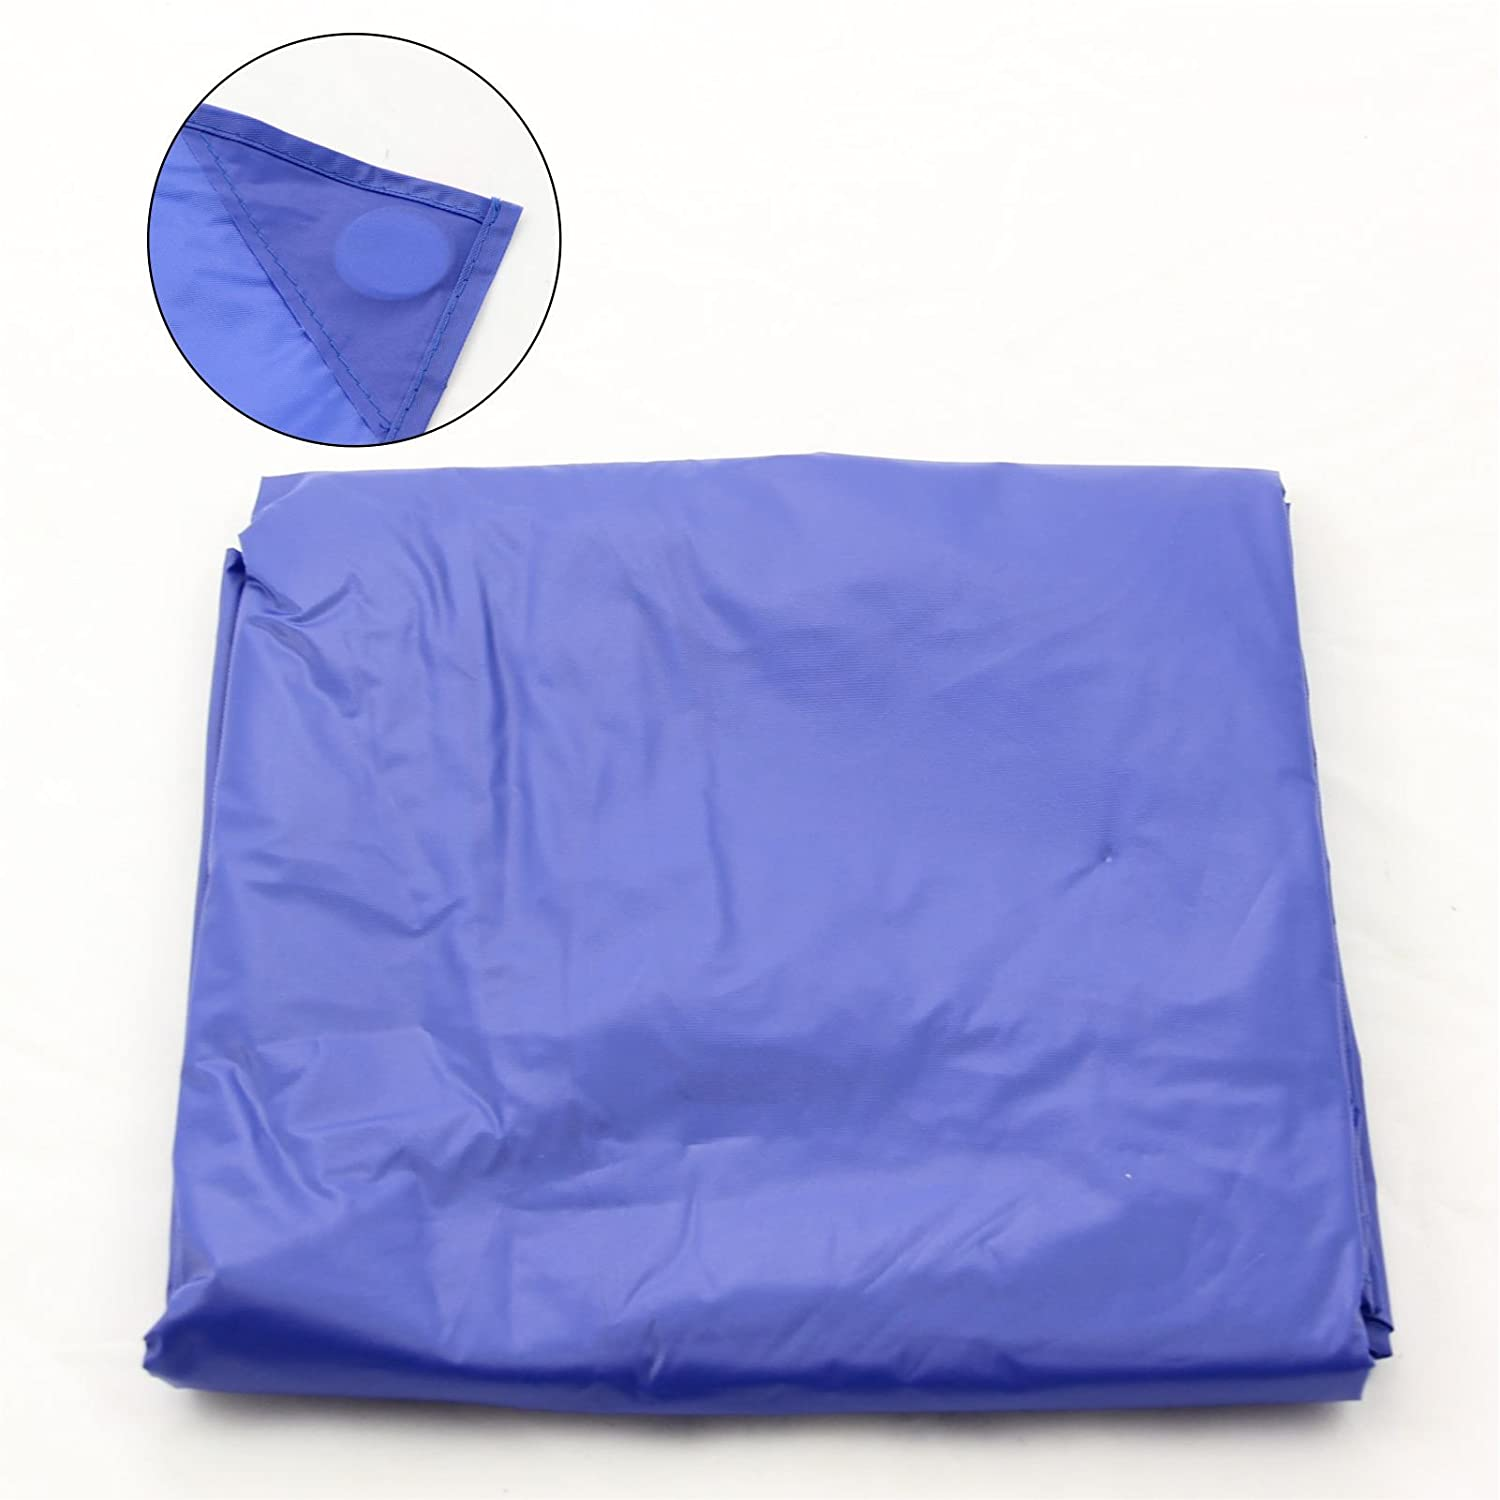 7FT BLUE NYLON WEIGHTED POOL OR SNOOKER TABLE COVER by Funky Chalk